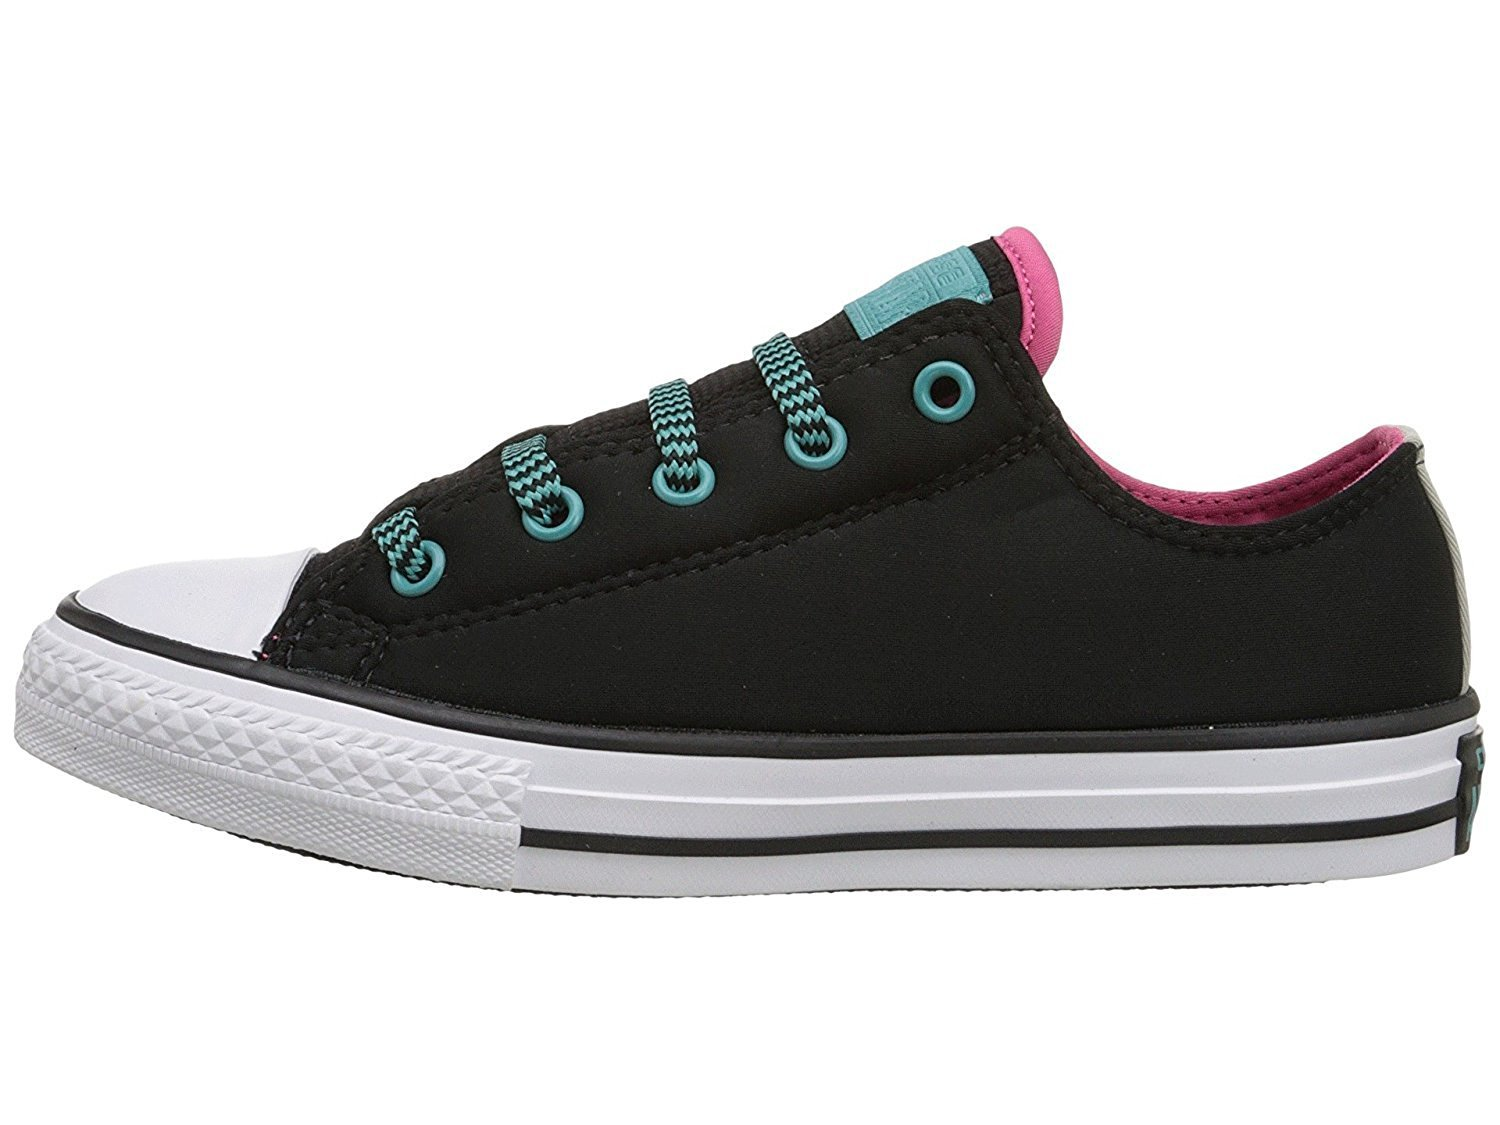 Details about Converse Chuck Taylor All Star Loopholes Ox BlackVivid PinkAqua size 2 junior